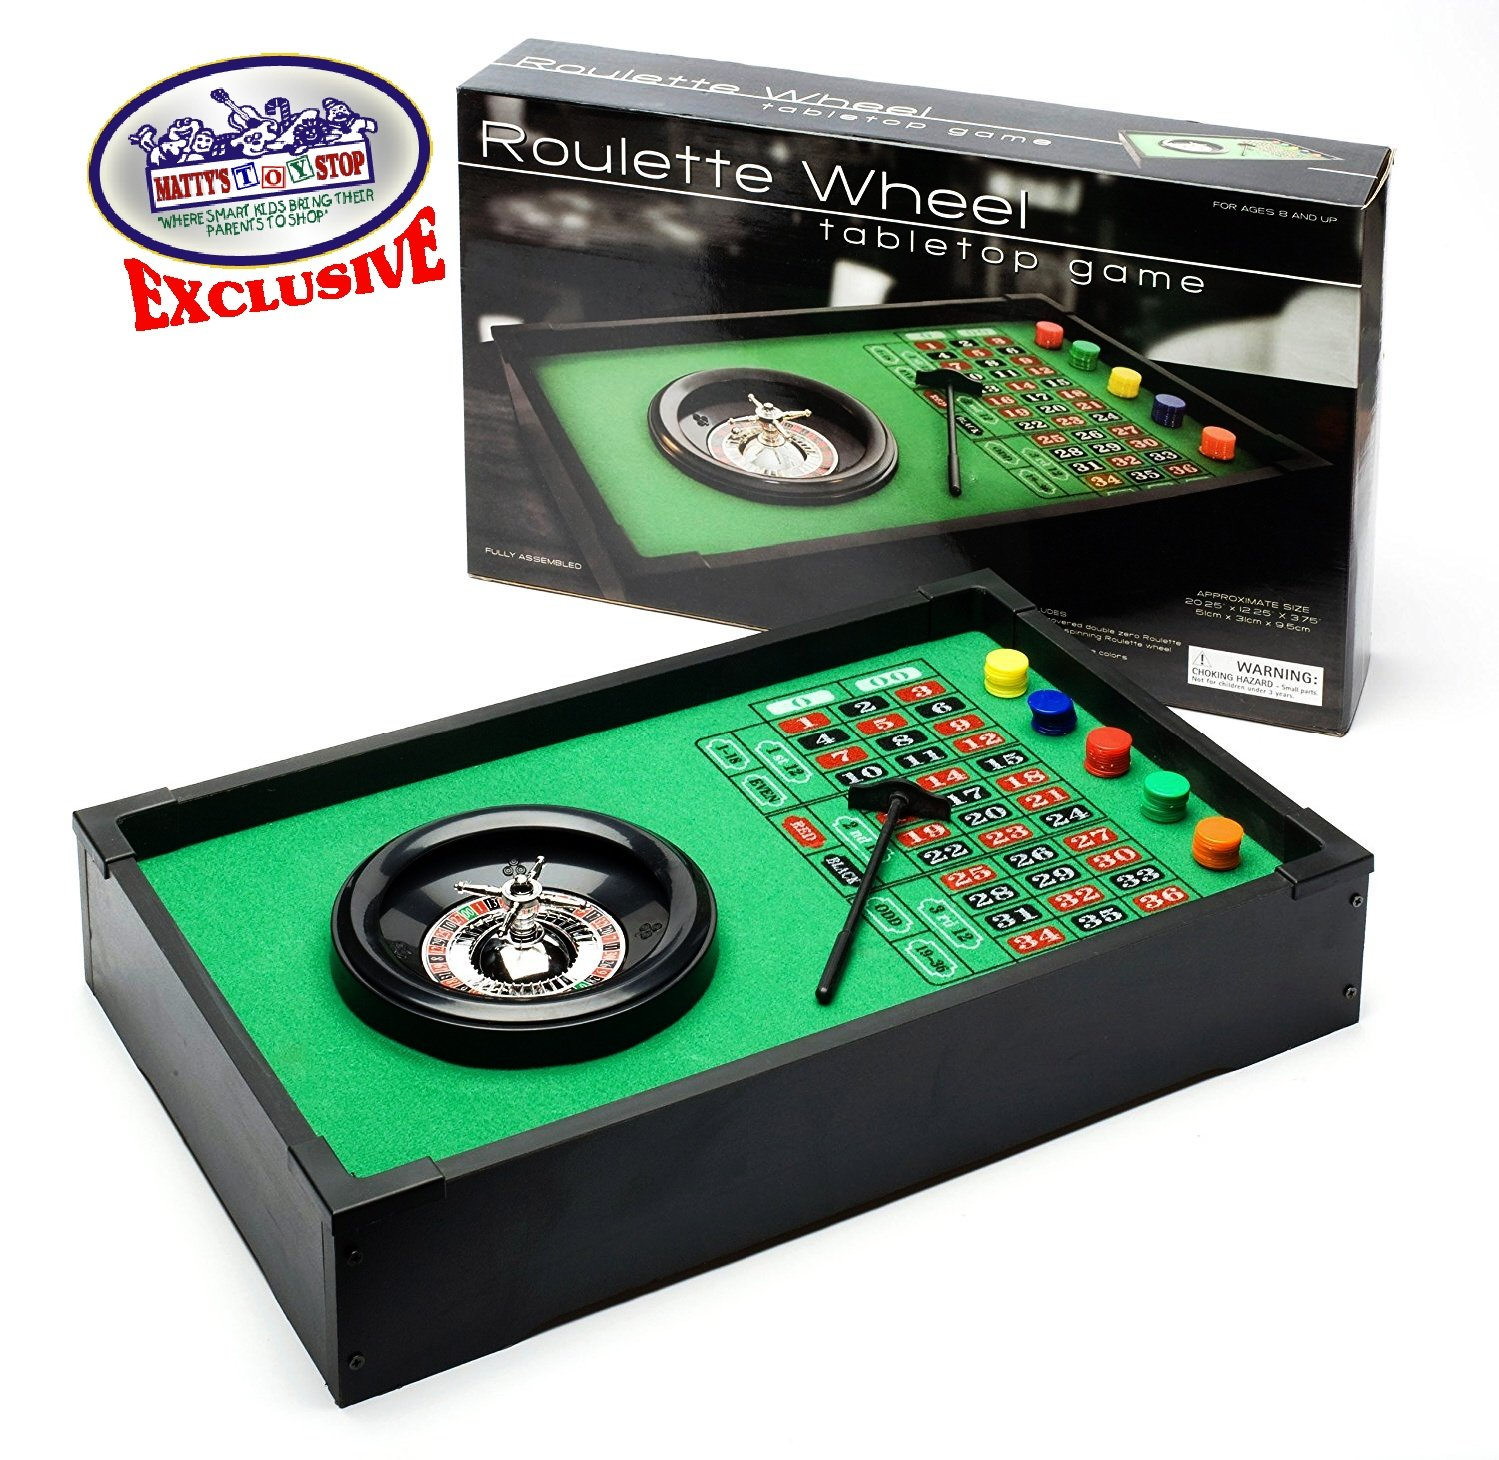 Deluxe Table Top Roulette Wheel with 50 Chips, Rake, Spinning Wheel & Double Zero Style Felt Covered Wood Table